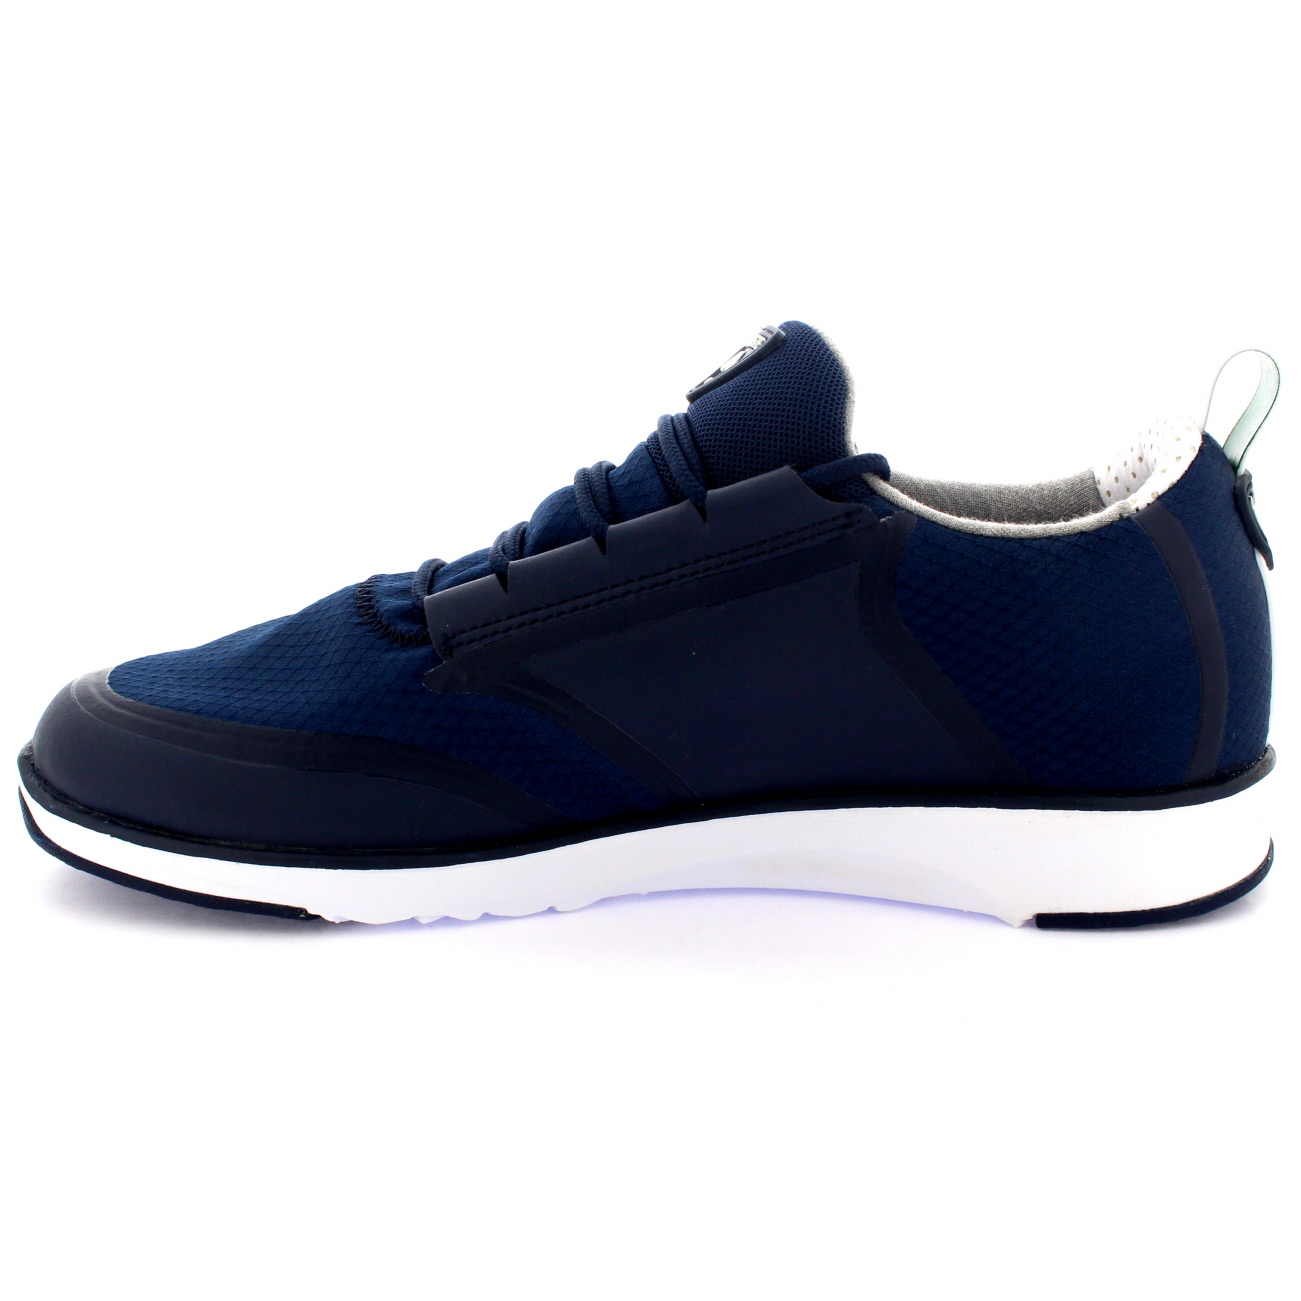 Mens-Lacoste-Light-LT12-Lace-Up-Low-Top-